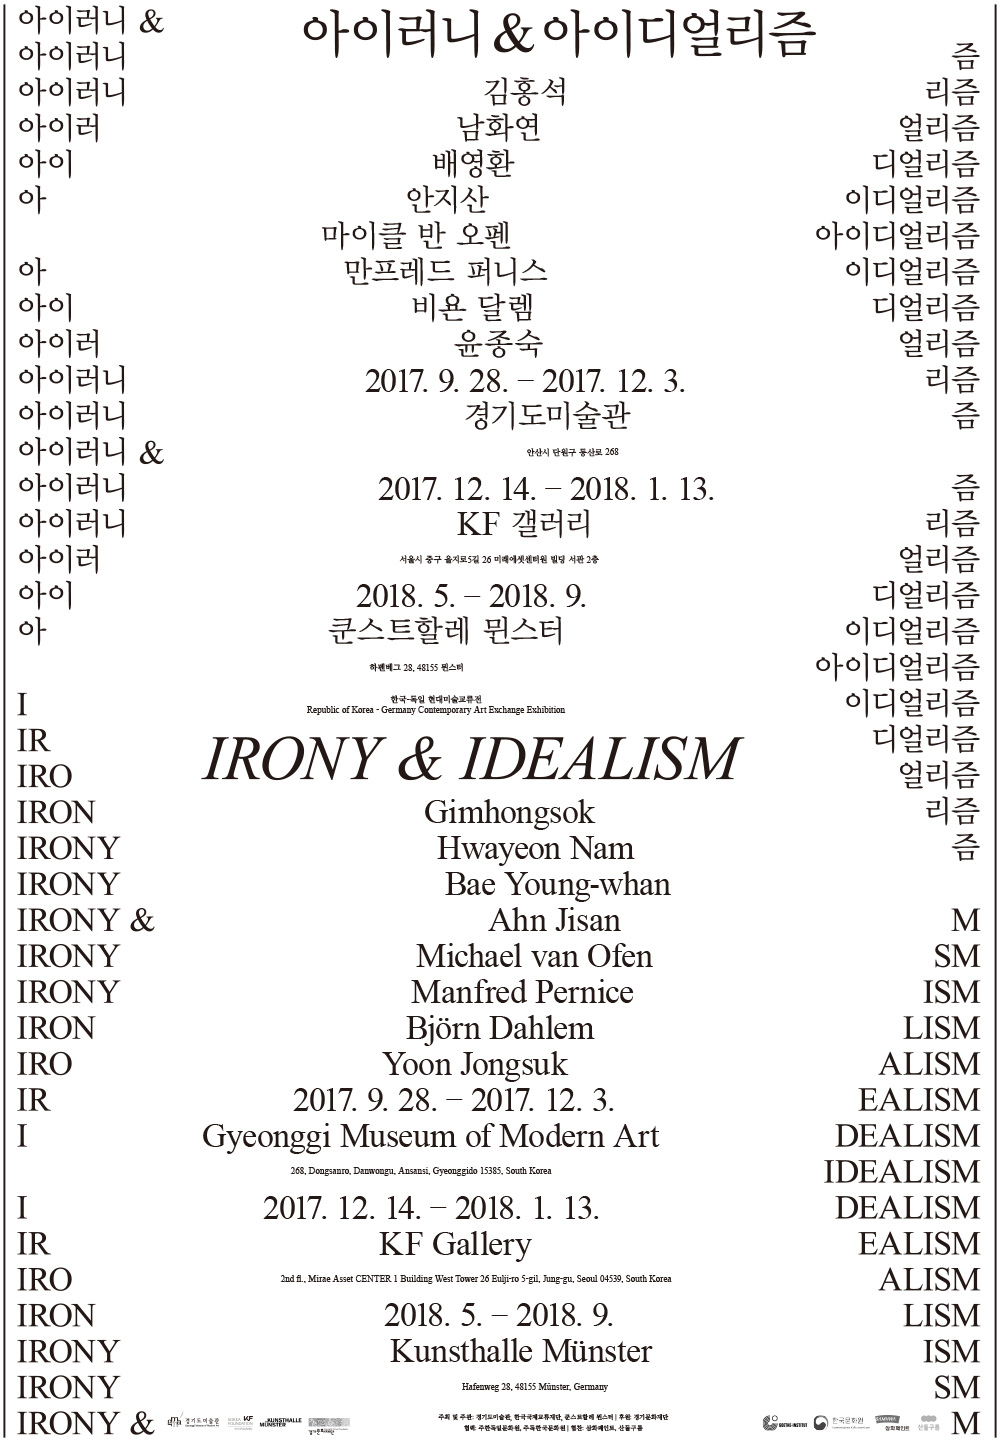 2017 Republic of Korea-Germany Contemporary Art Exchange Exhibition IRONY & IDEALISM